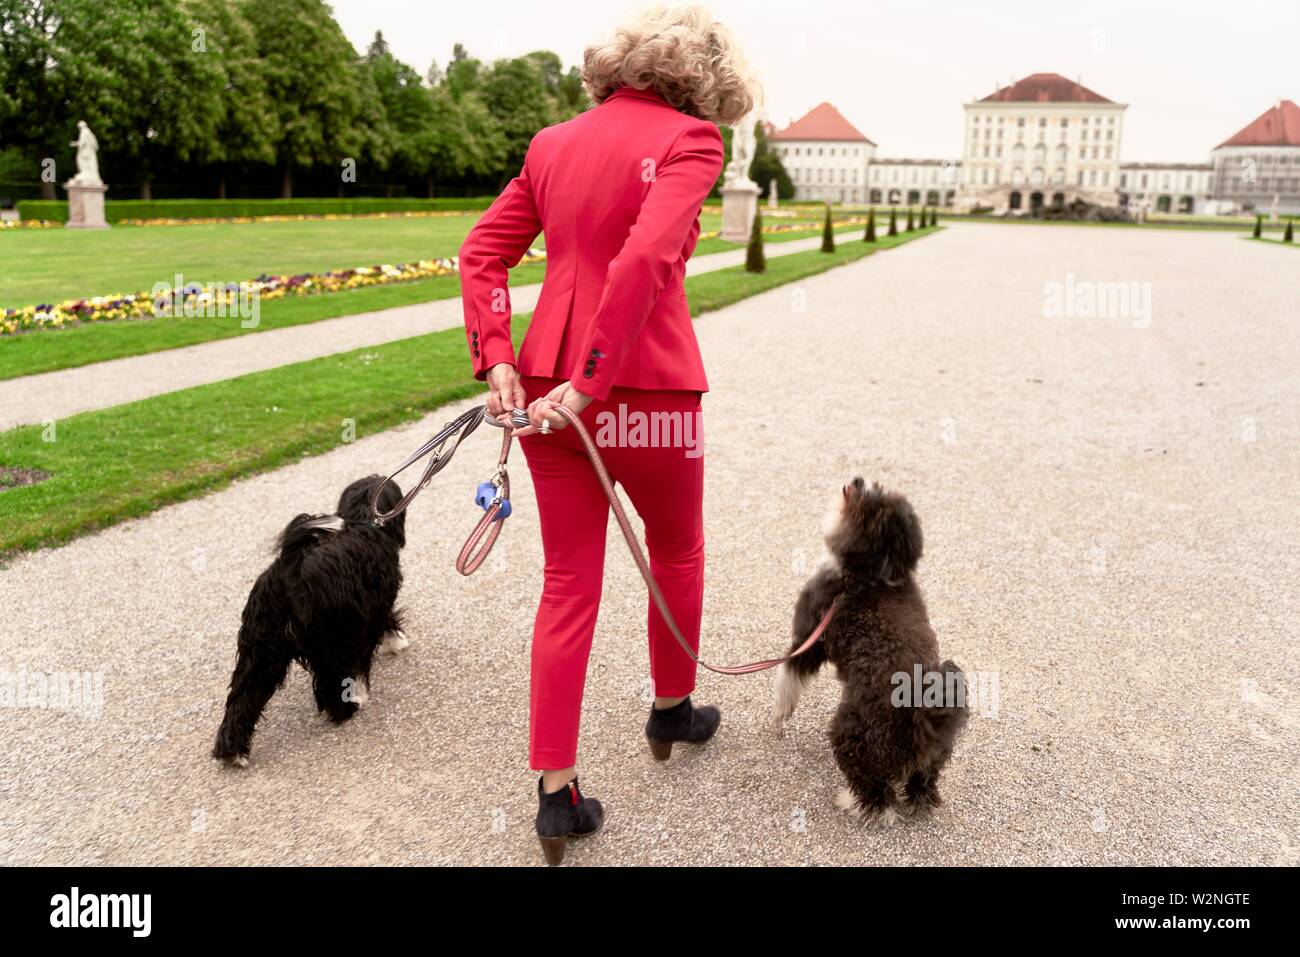 senior woman (67 years old) walking with two dogs in park, in Nymphenburg, Munich, Germany. - Stock Image